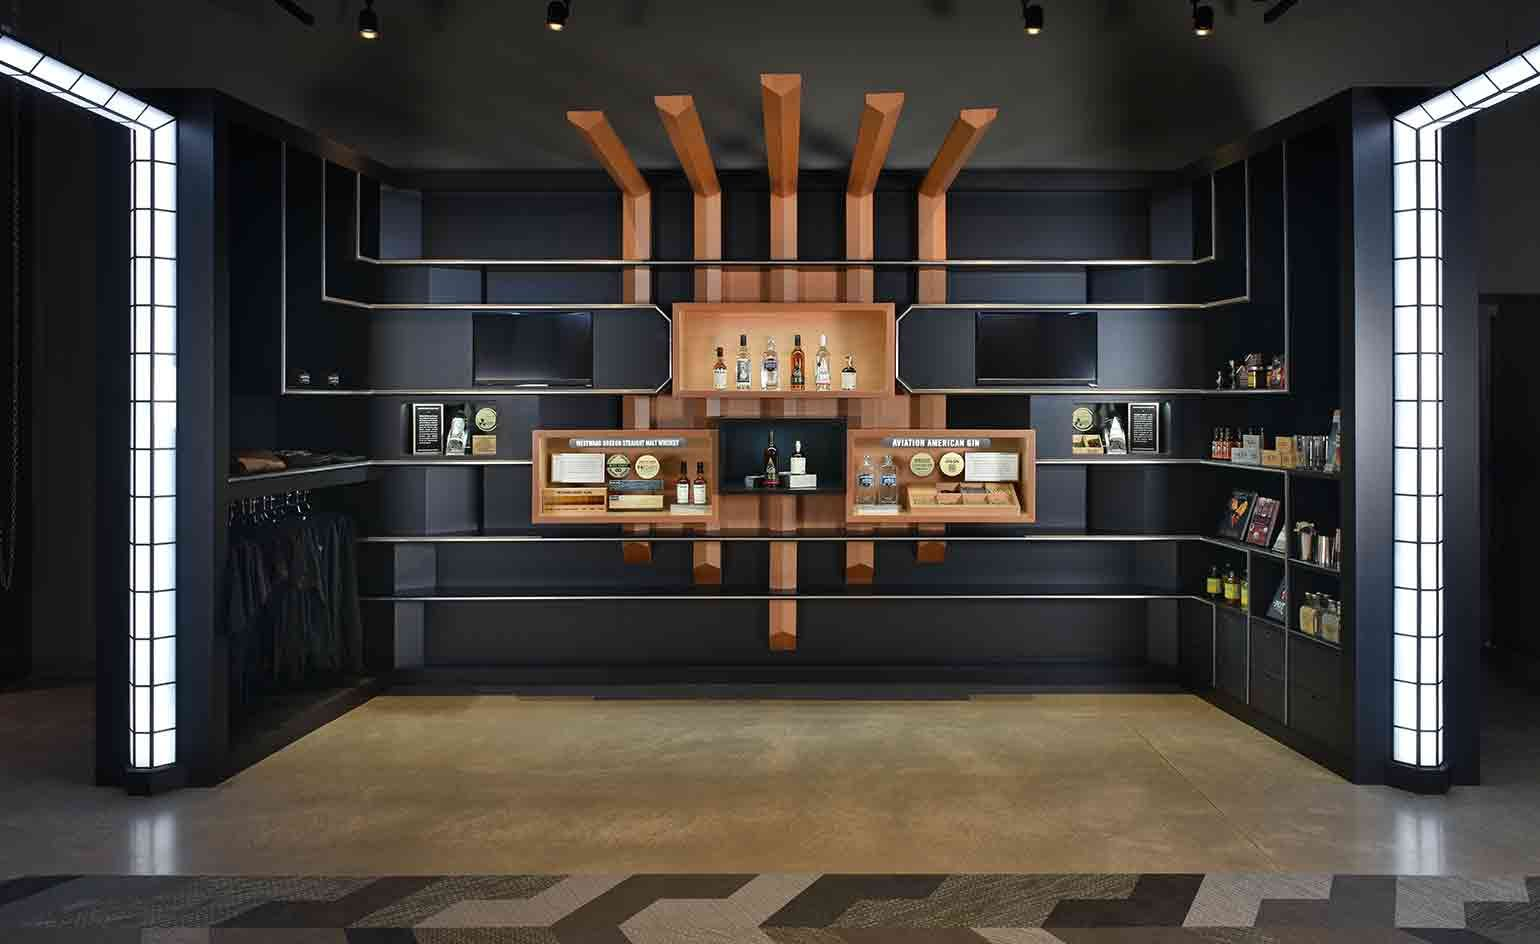 Whitney ii amp tiffany kitchen other by wood mode fine - The New Sonos Flagship Store In Nyc Is An Immersive Space For Die Hard Audiophiles Sonos Spaces And Store